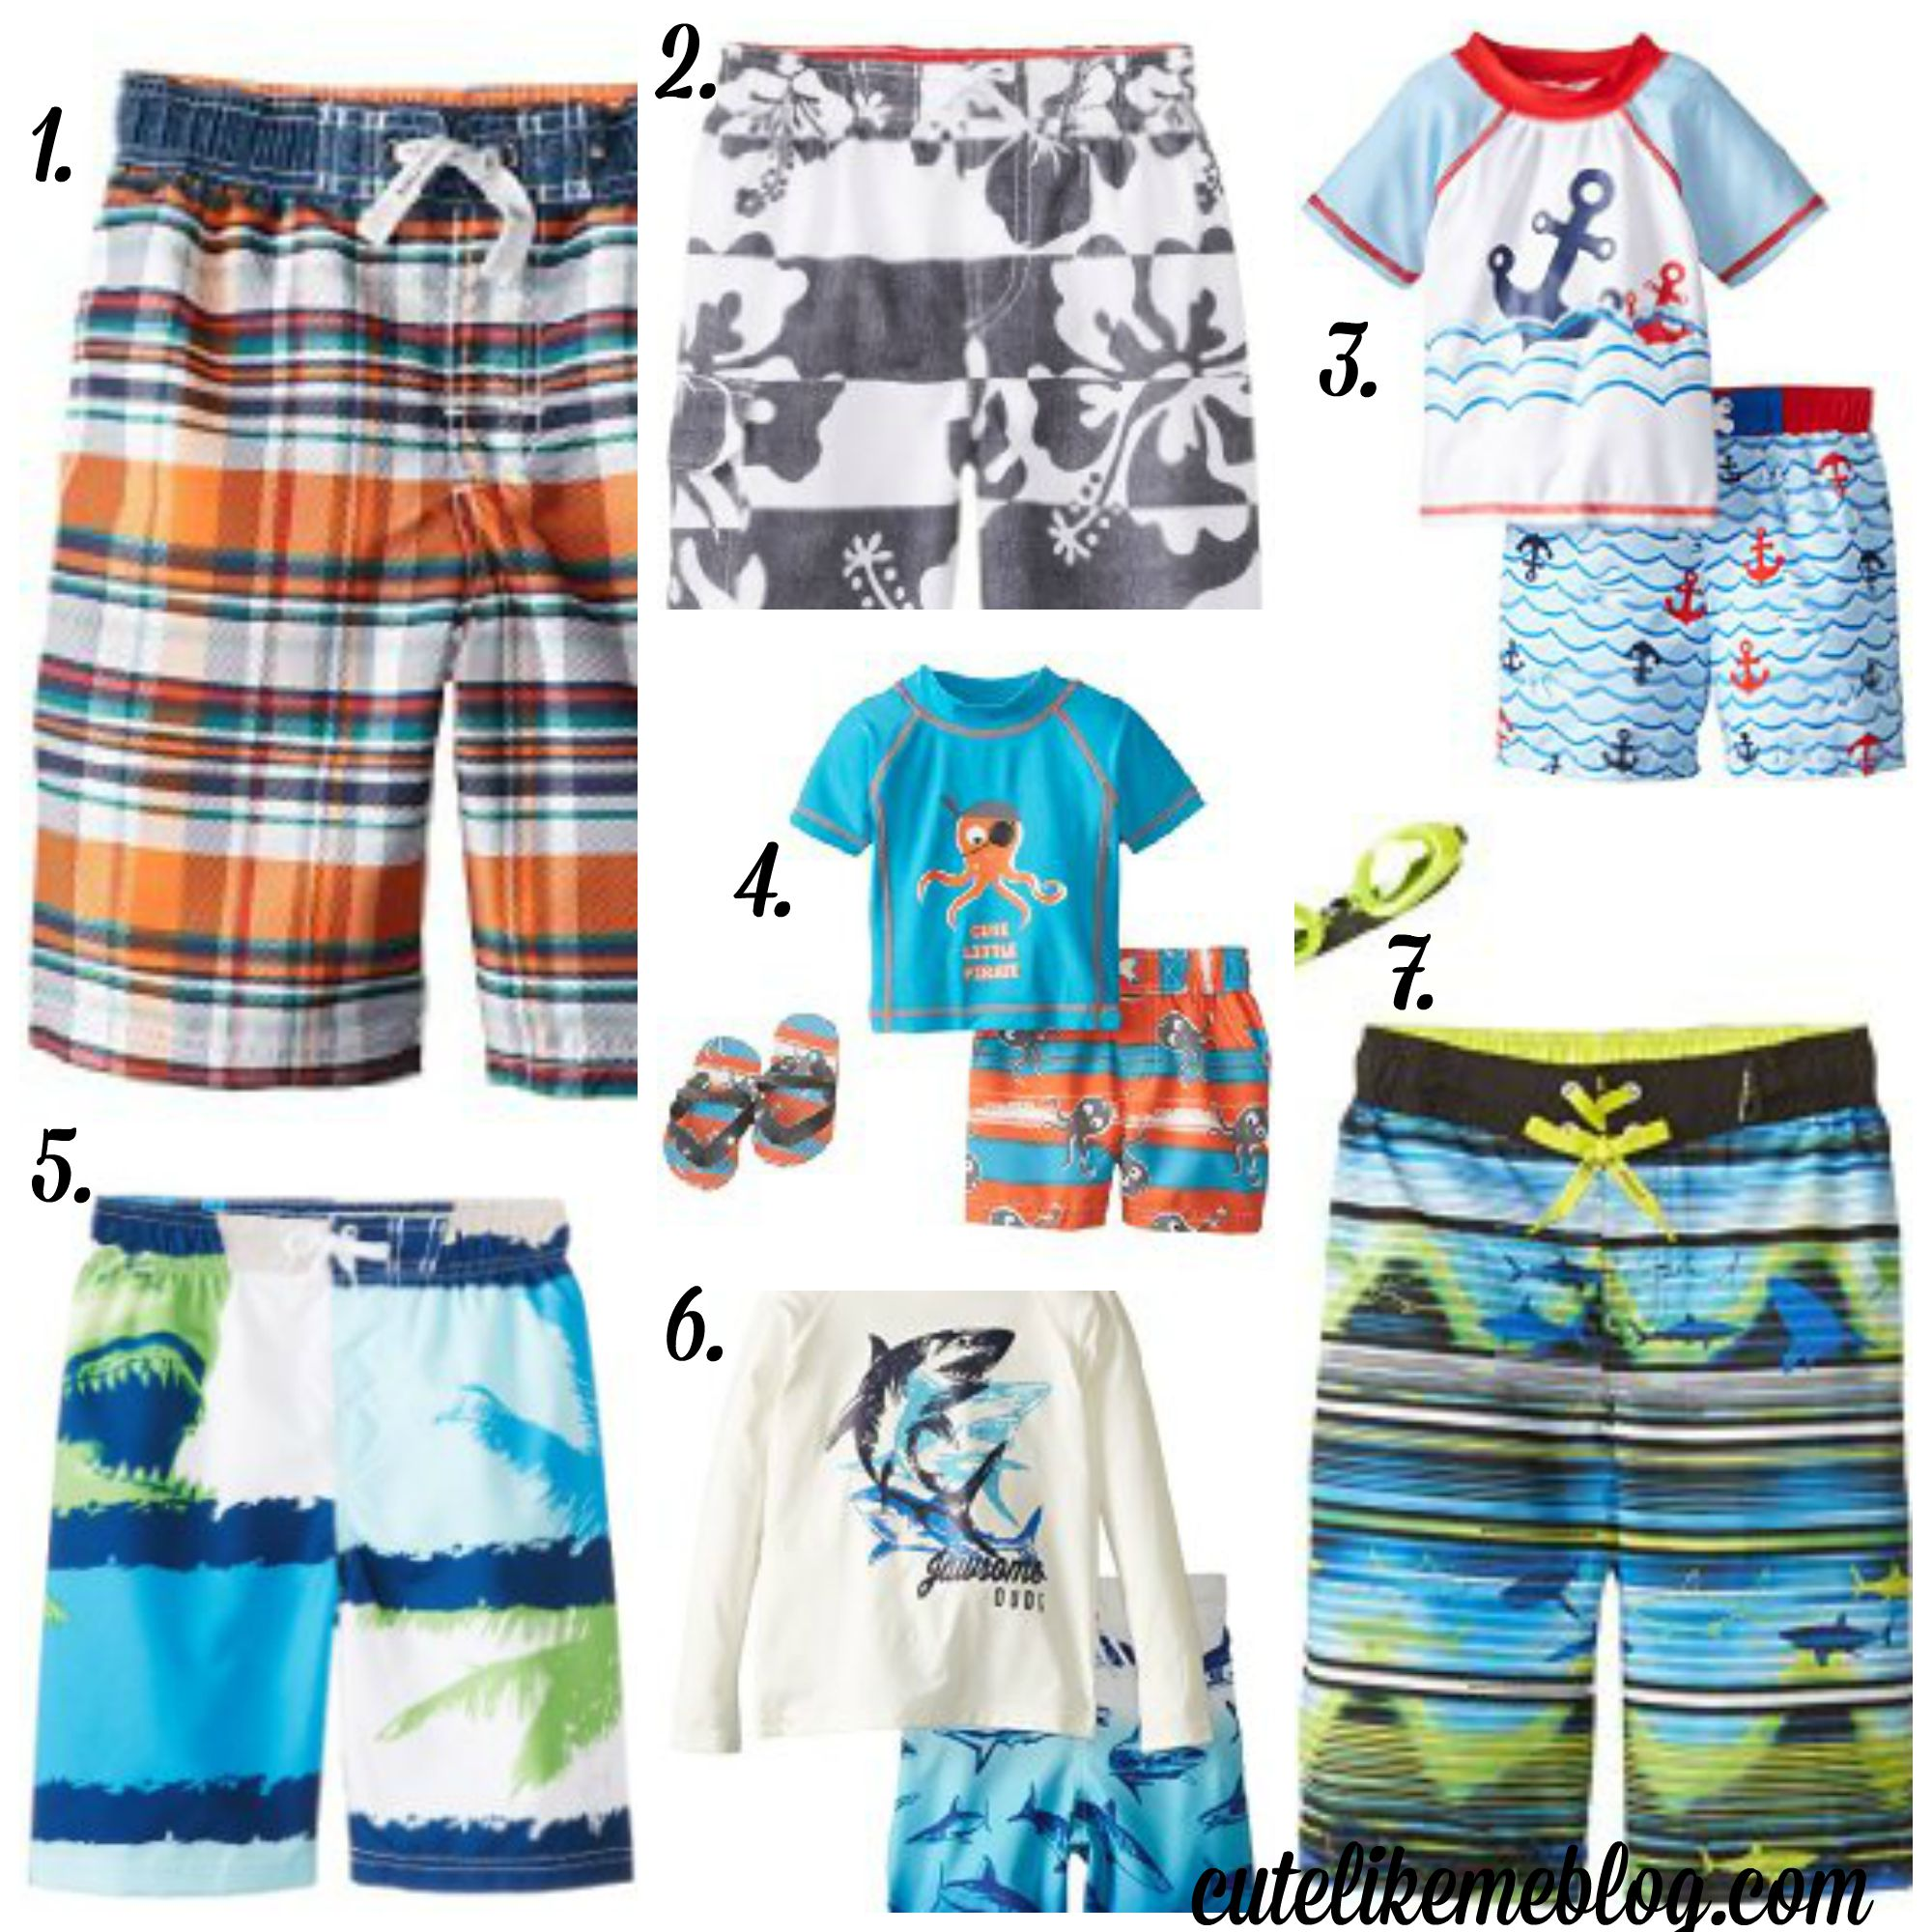 adidas baby buns big chill carters flap happy hurley kanu laguna nautica osh kosh solo international us polo association wippette zeroxposur swimwear these are the days cute like me amazon swimwear